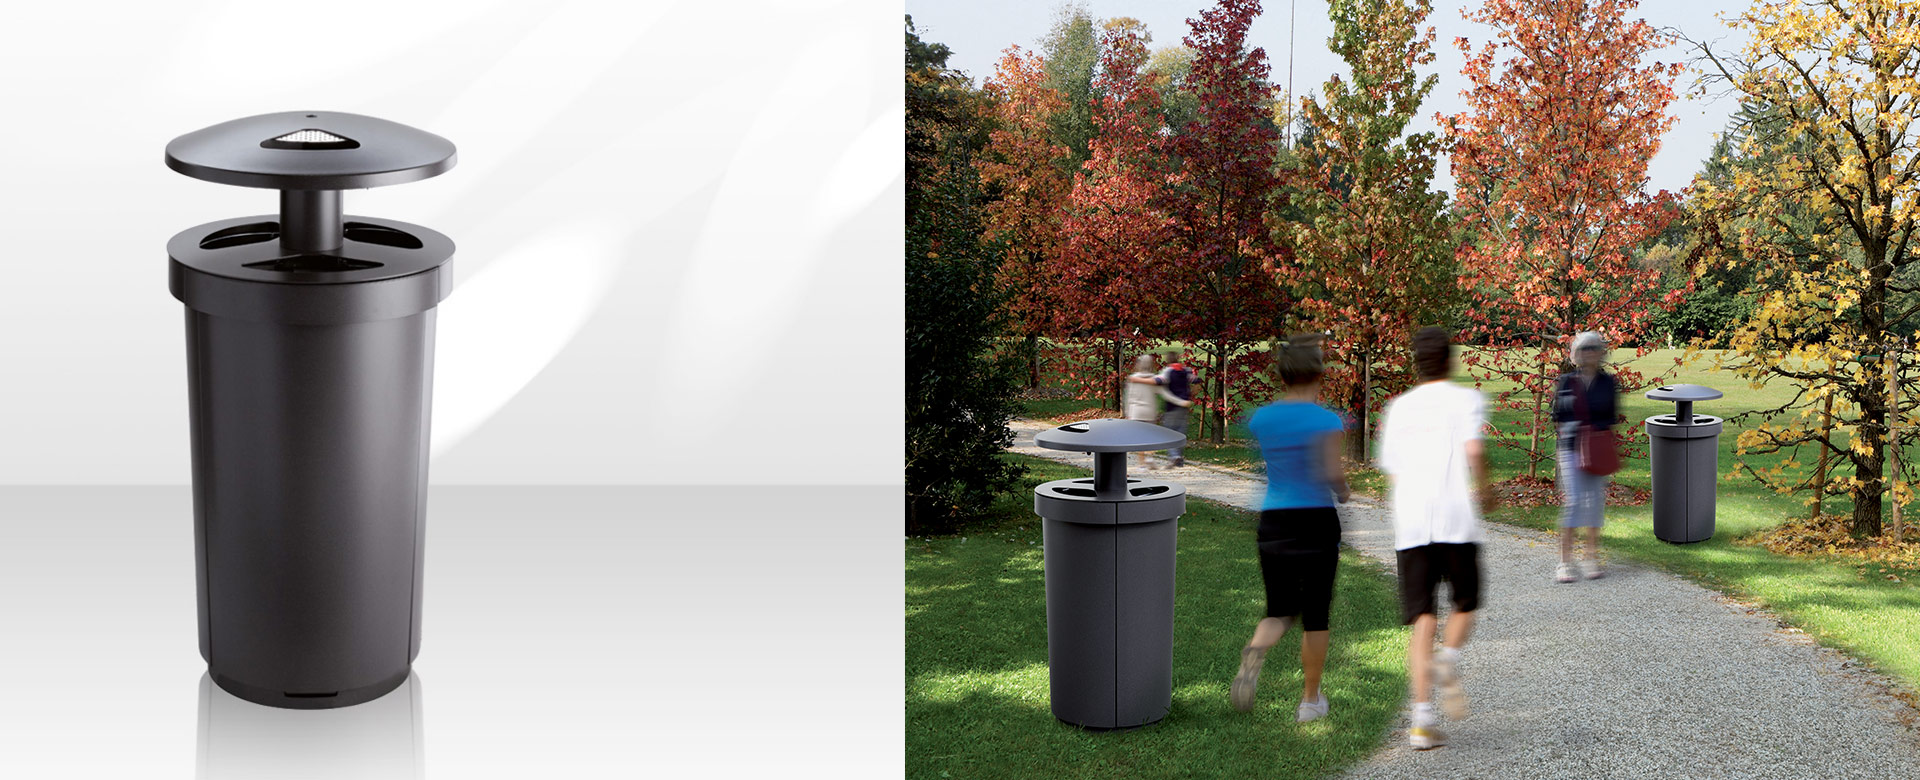 MECORA - Outdoor Waste Receptacle